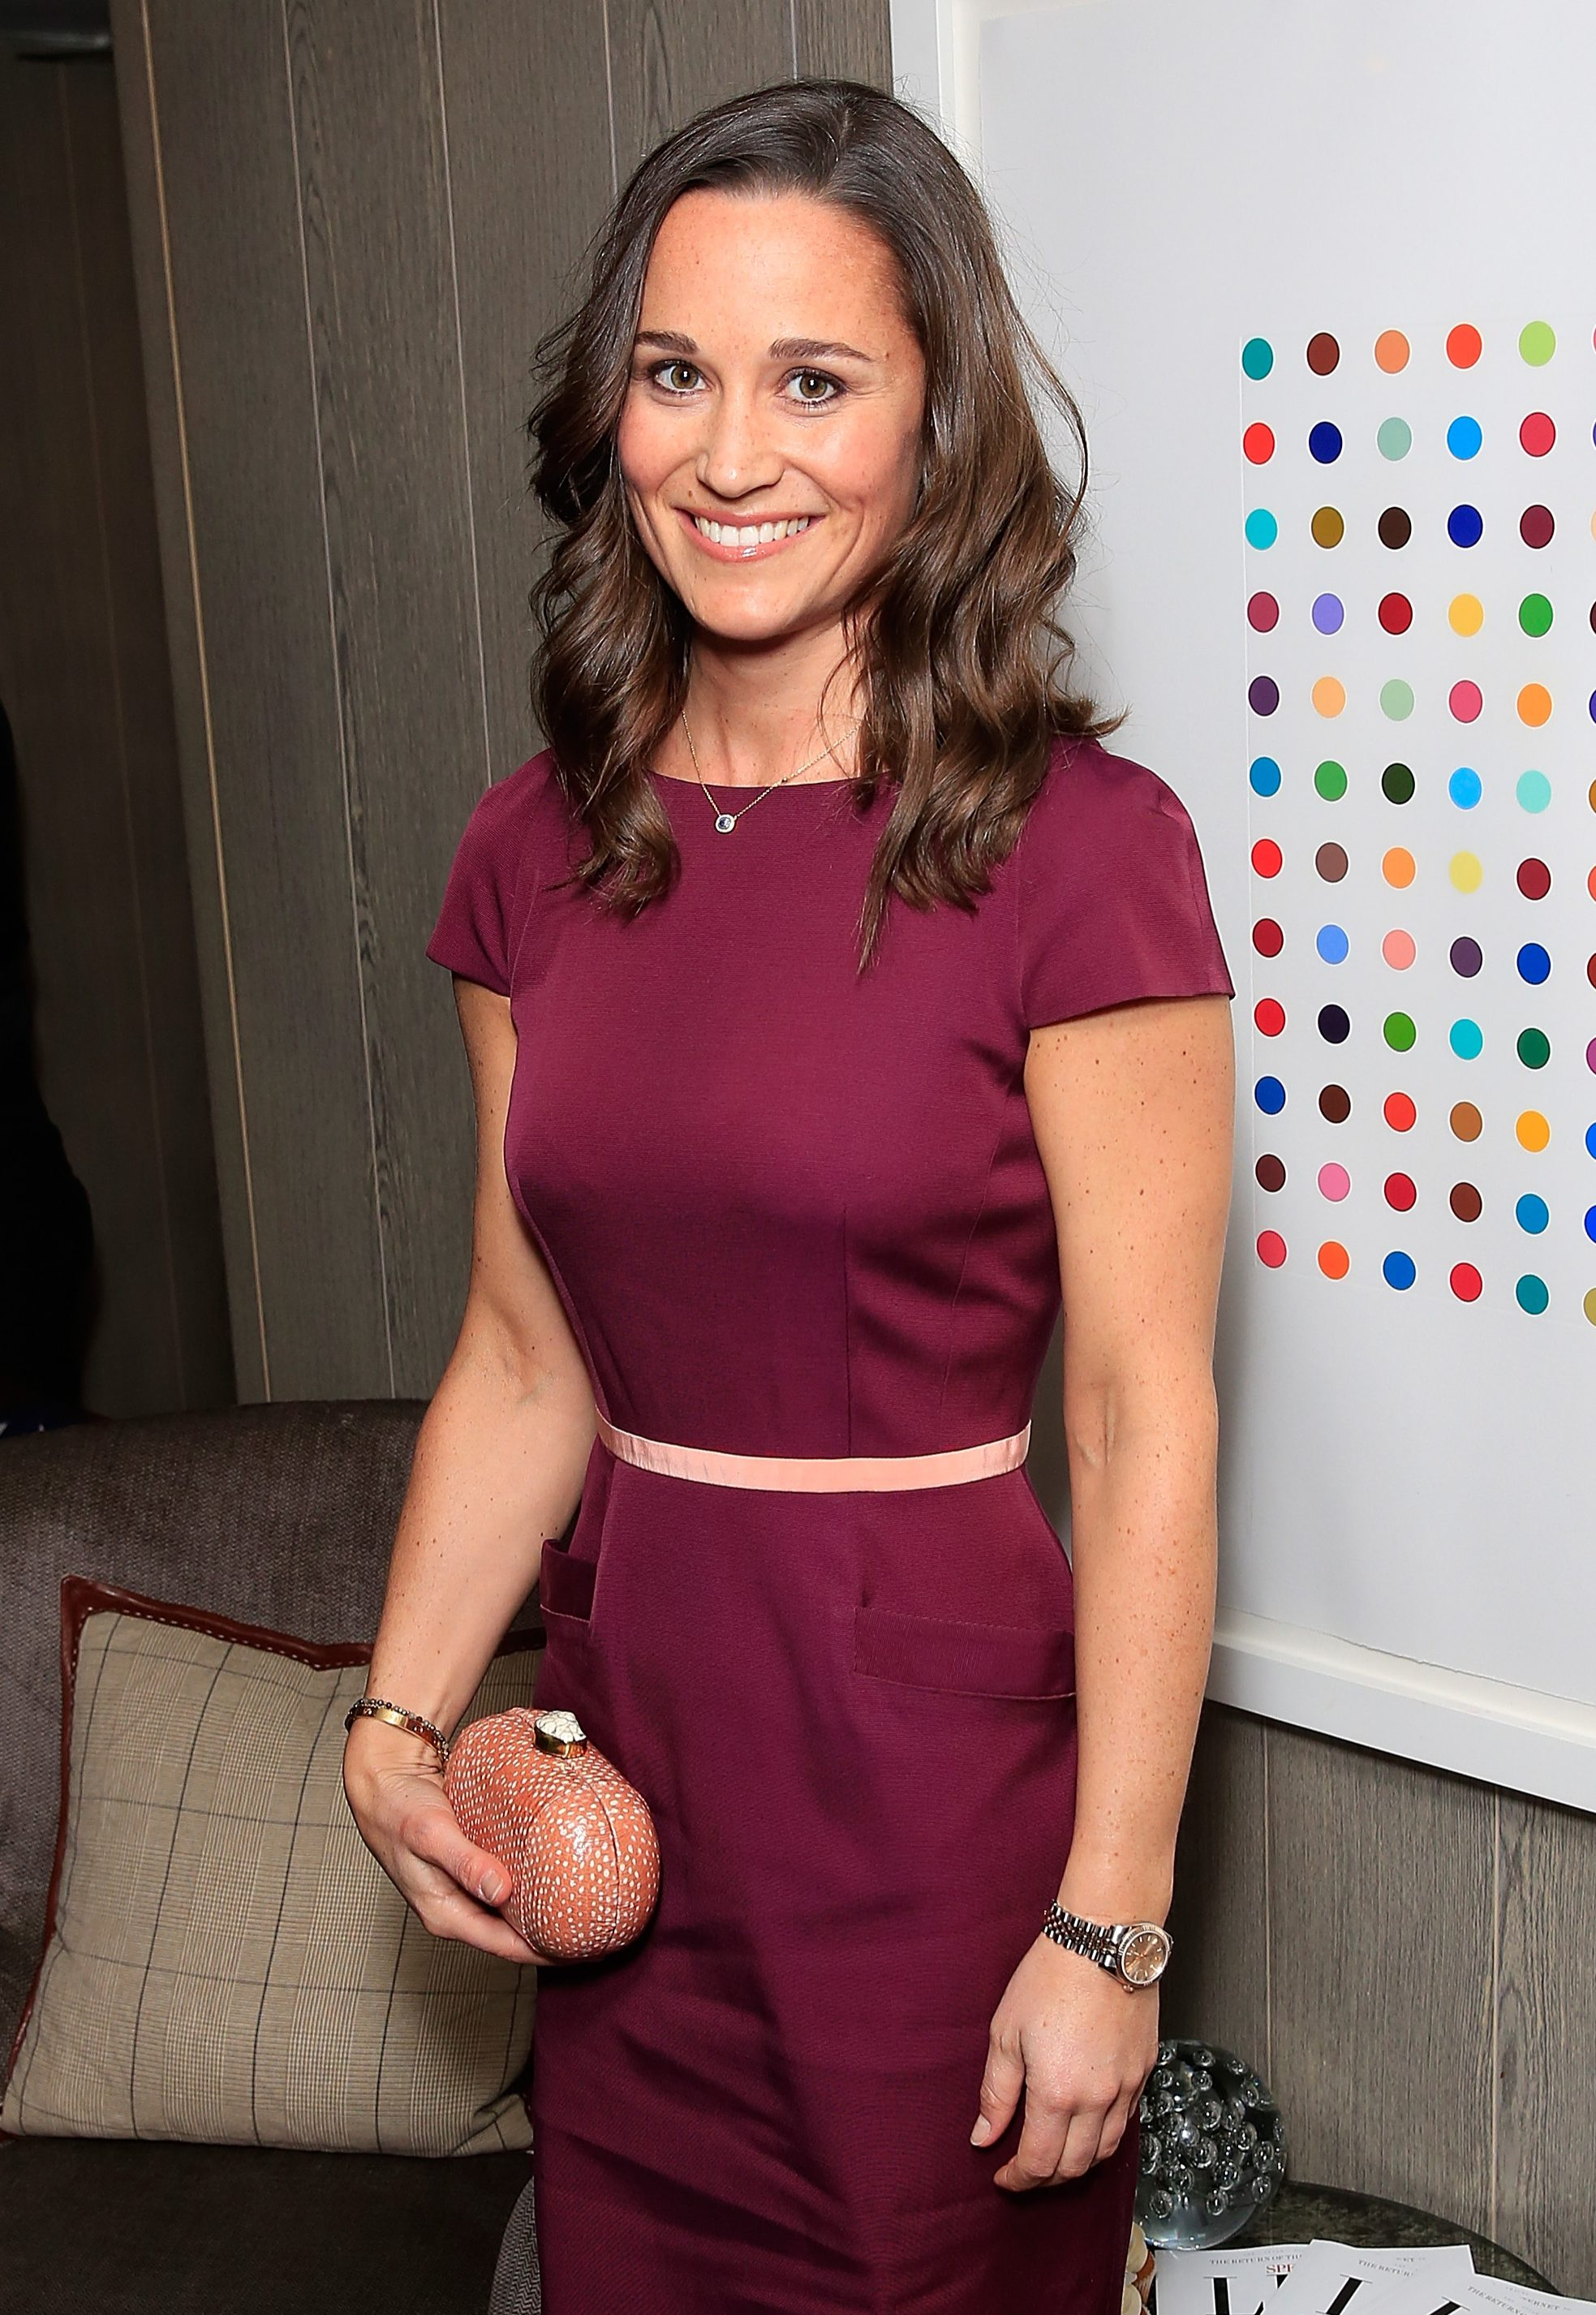 Pippa Middleton Nude Images photo 2